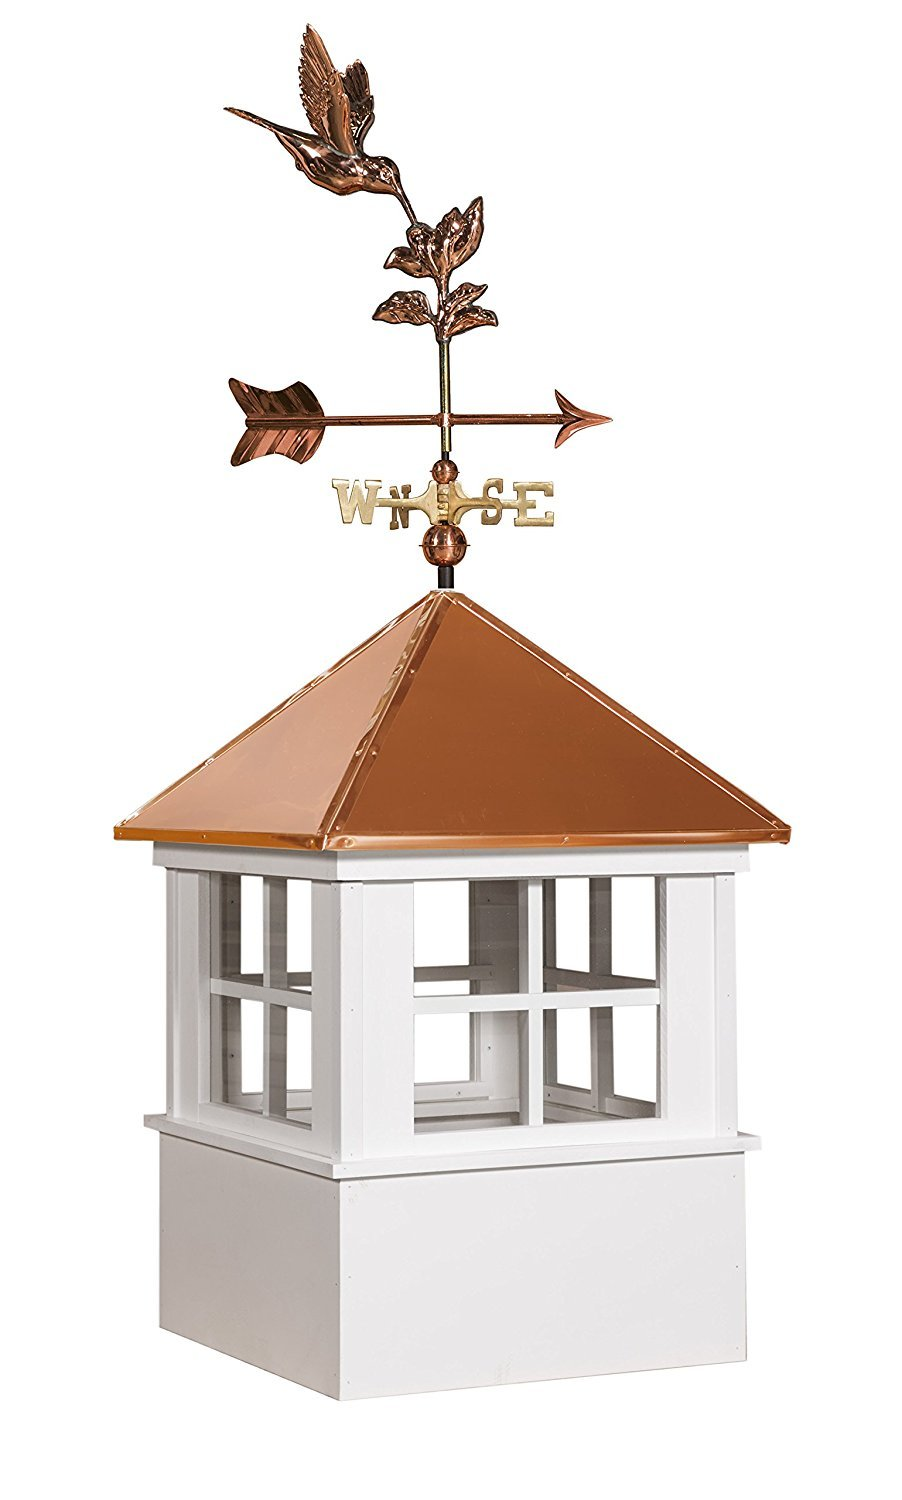 East Coast Weathervanes and Cupolas Vinyl Chester Cupola With Hummingbird Weathervane (vinyl, 25 in square x 61 in tall)